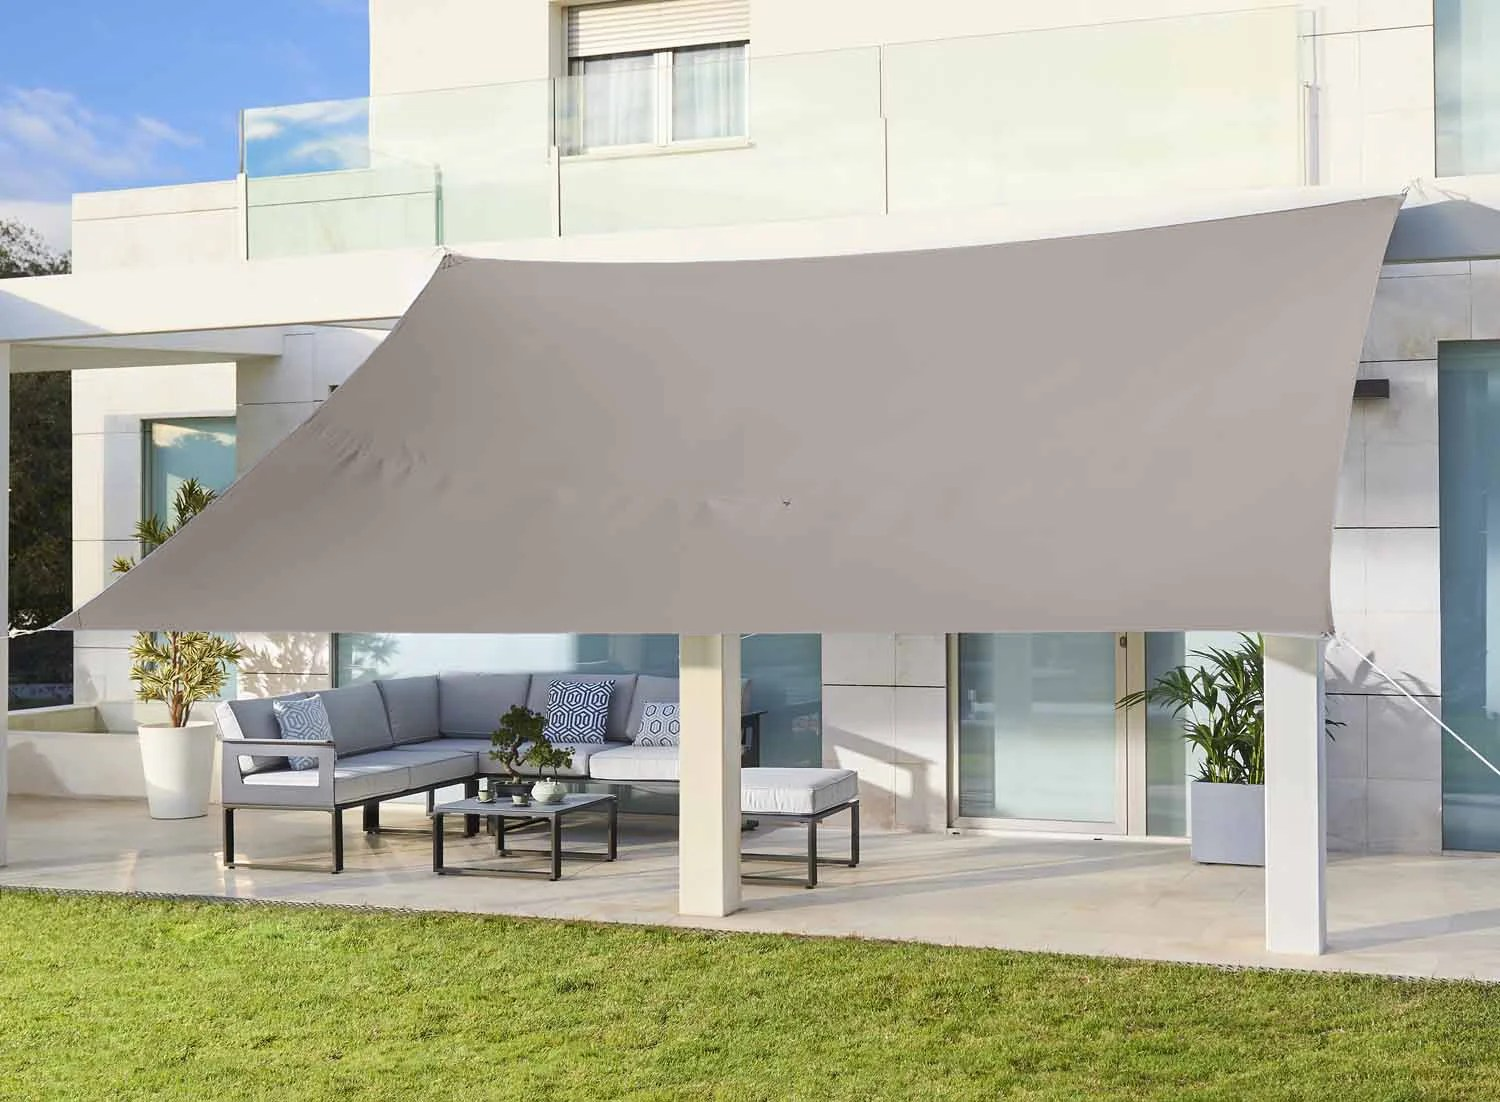 Voile D Ombrage Rectangulaire Taupe L 400 X L 300 Cm Leroy Merlin